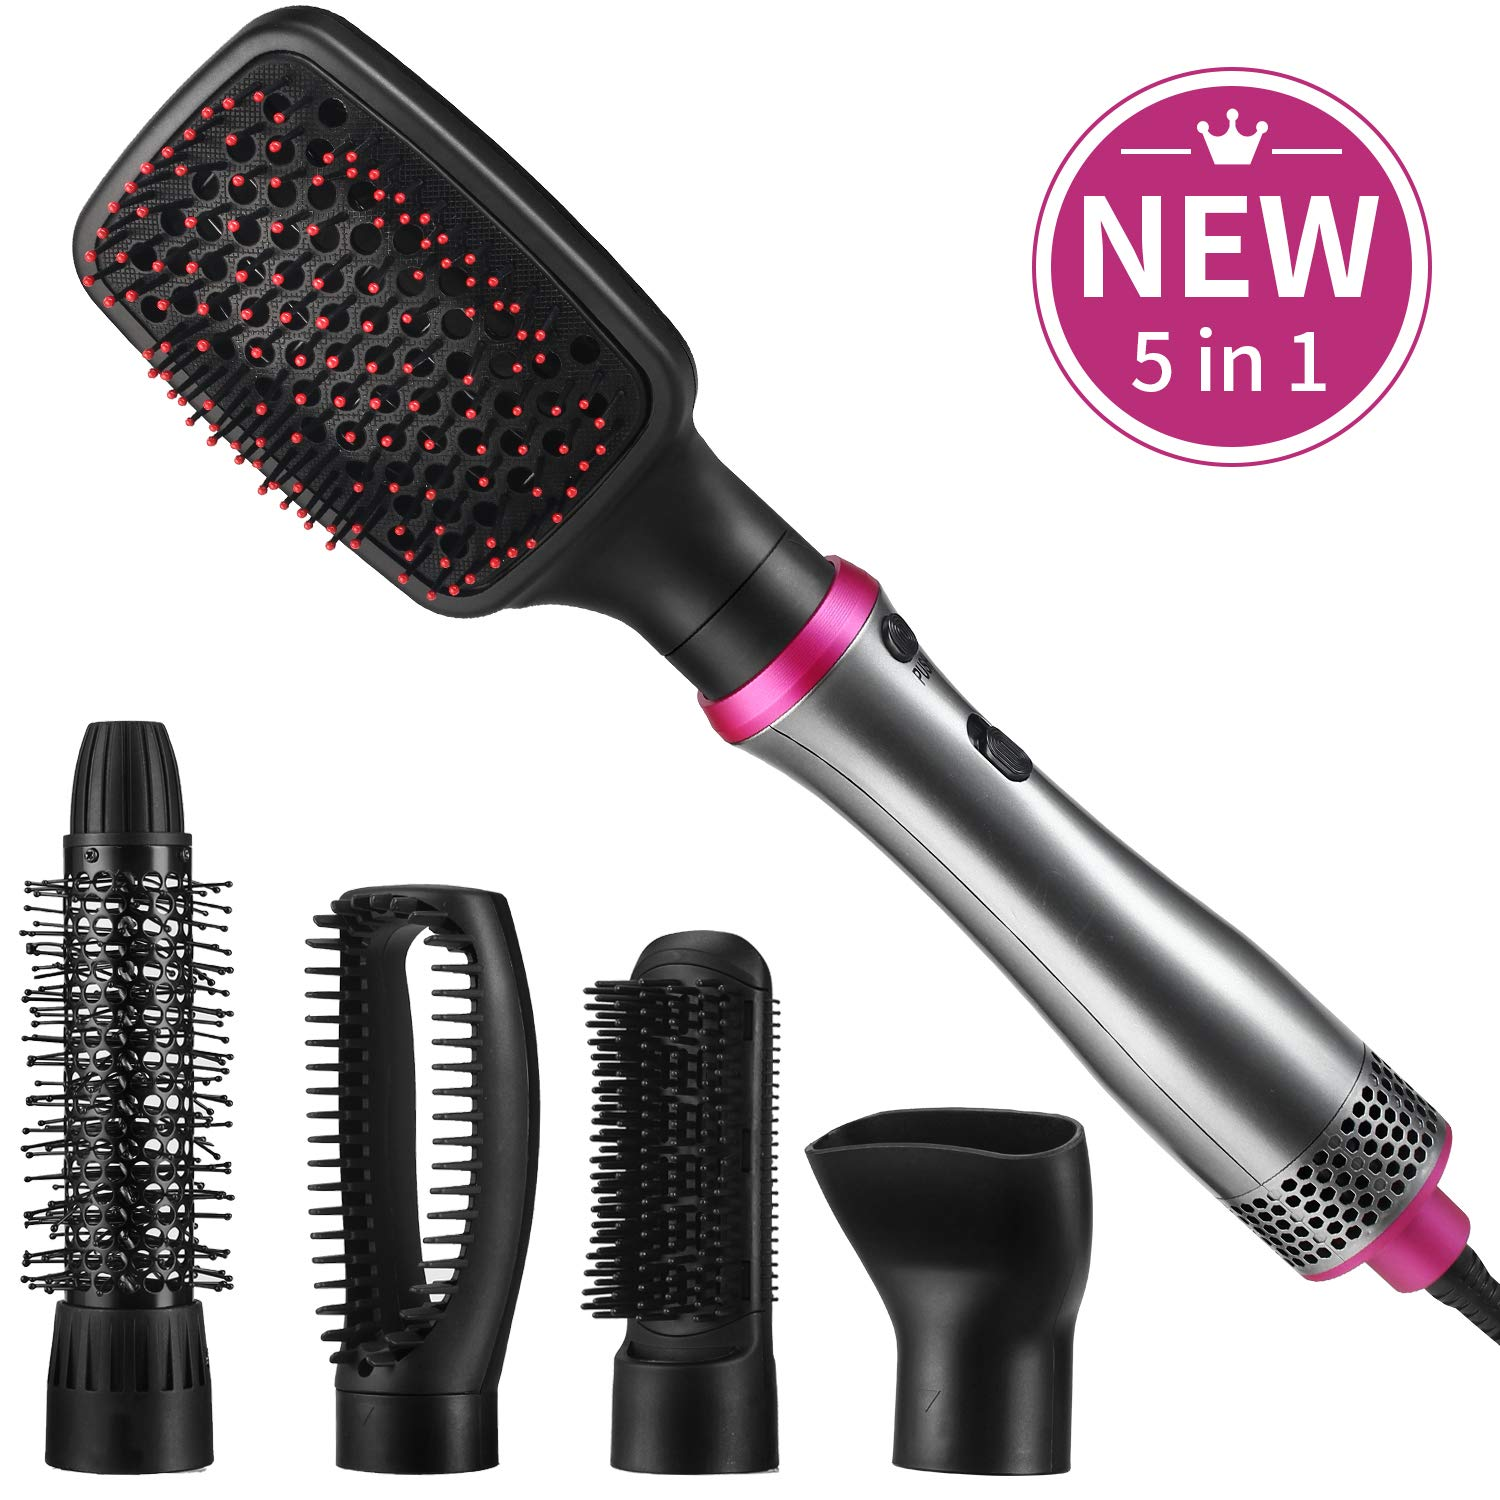 Hair Dryer Brush,ASOGO 5 In 1 Hot Air Brush Multifunctional One Step Hair Styler&Volumizer for Drying&Straightening&Curling&Styling Salon Negative Ion Hair Comb Blow Dryer Brush(Grey 110V US outlet) by ASOGO